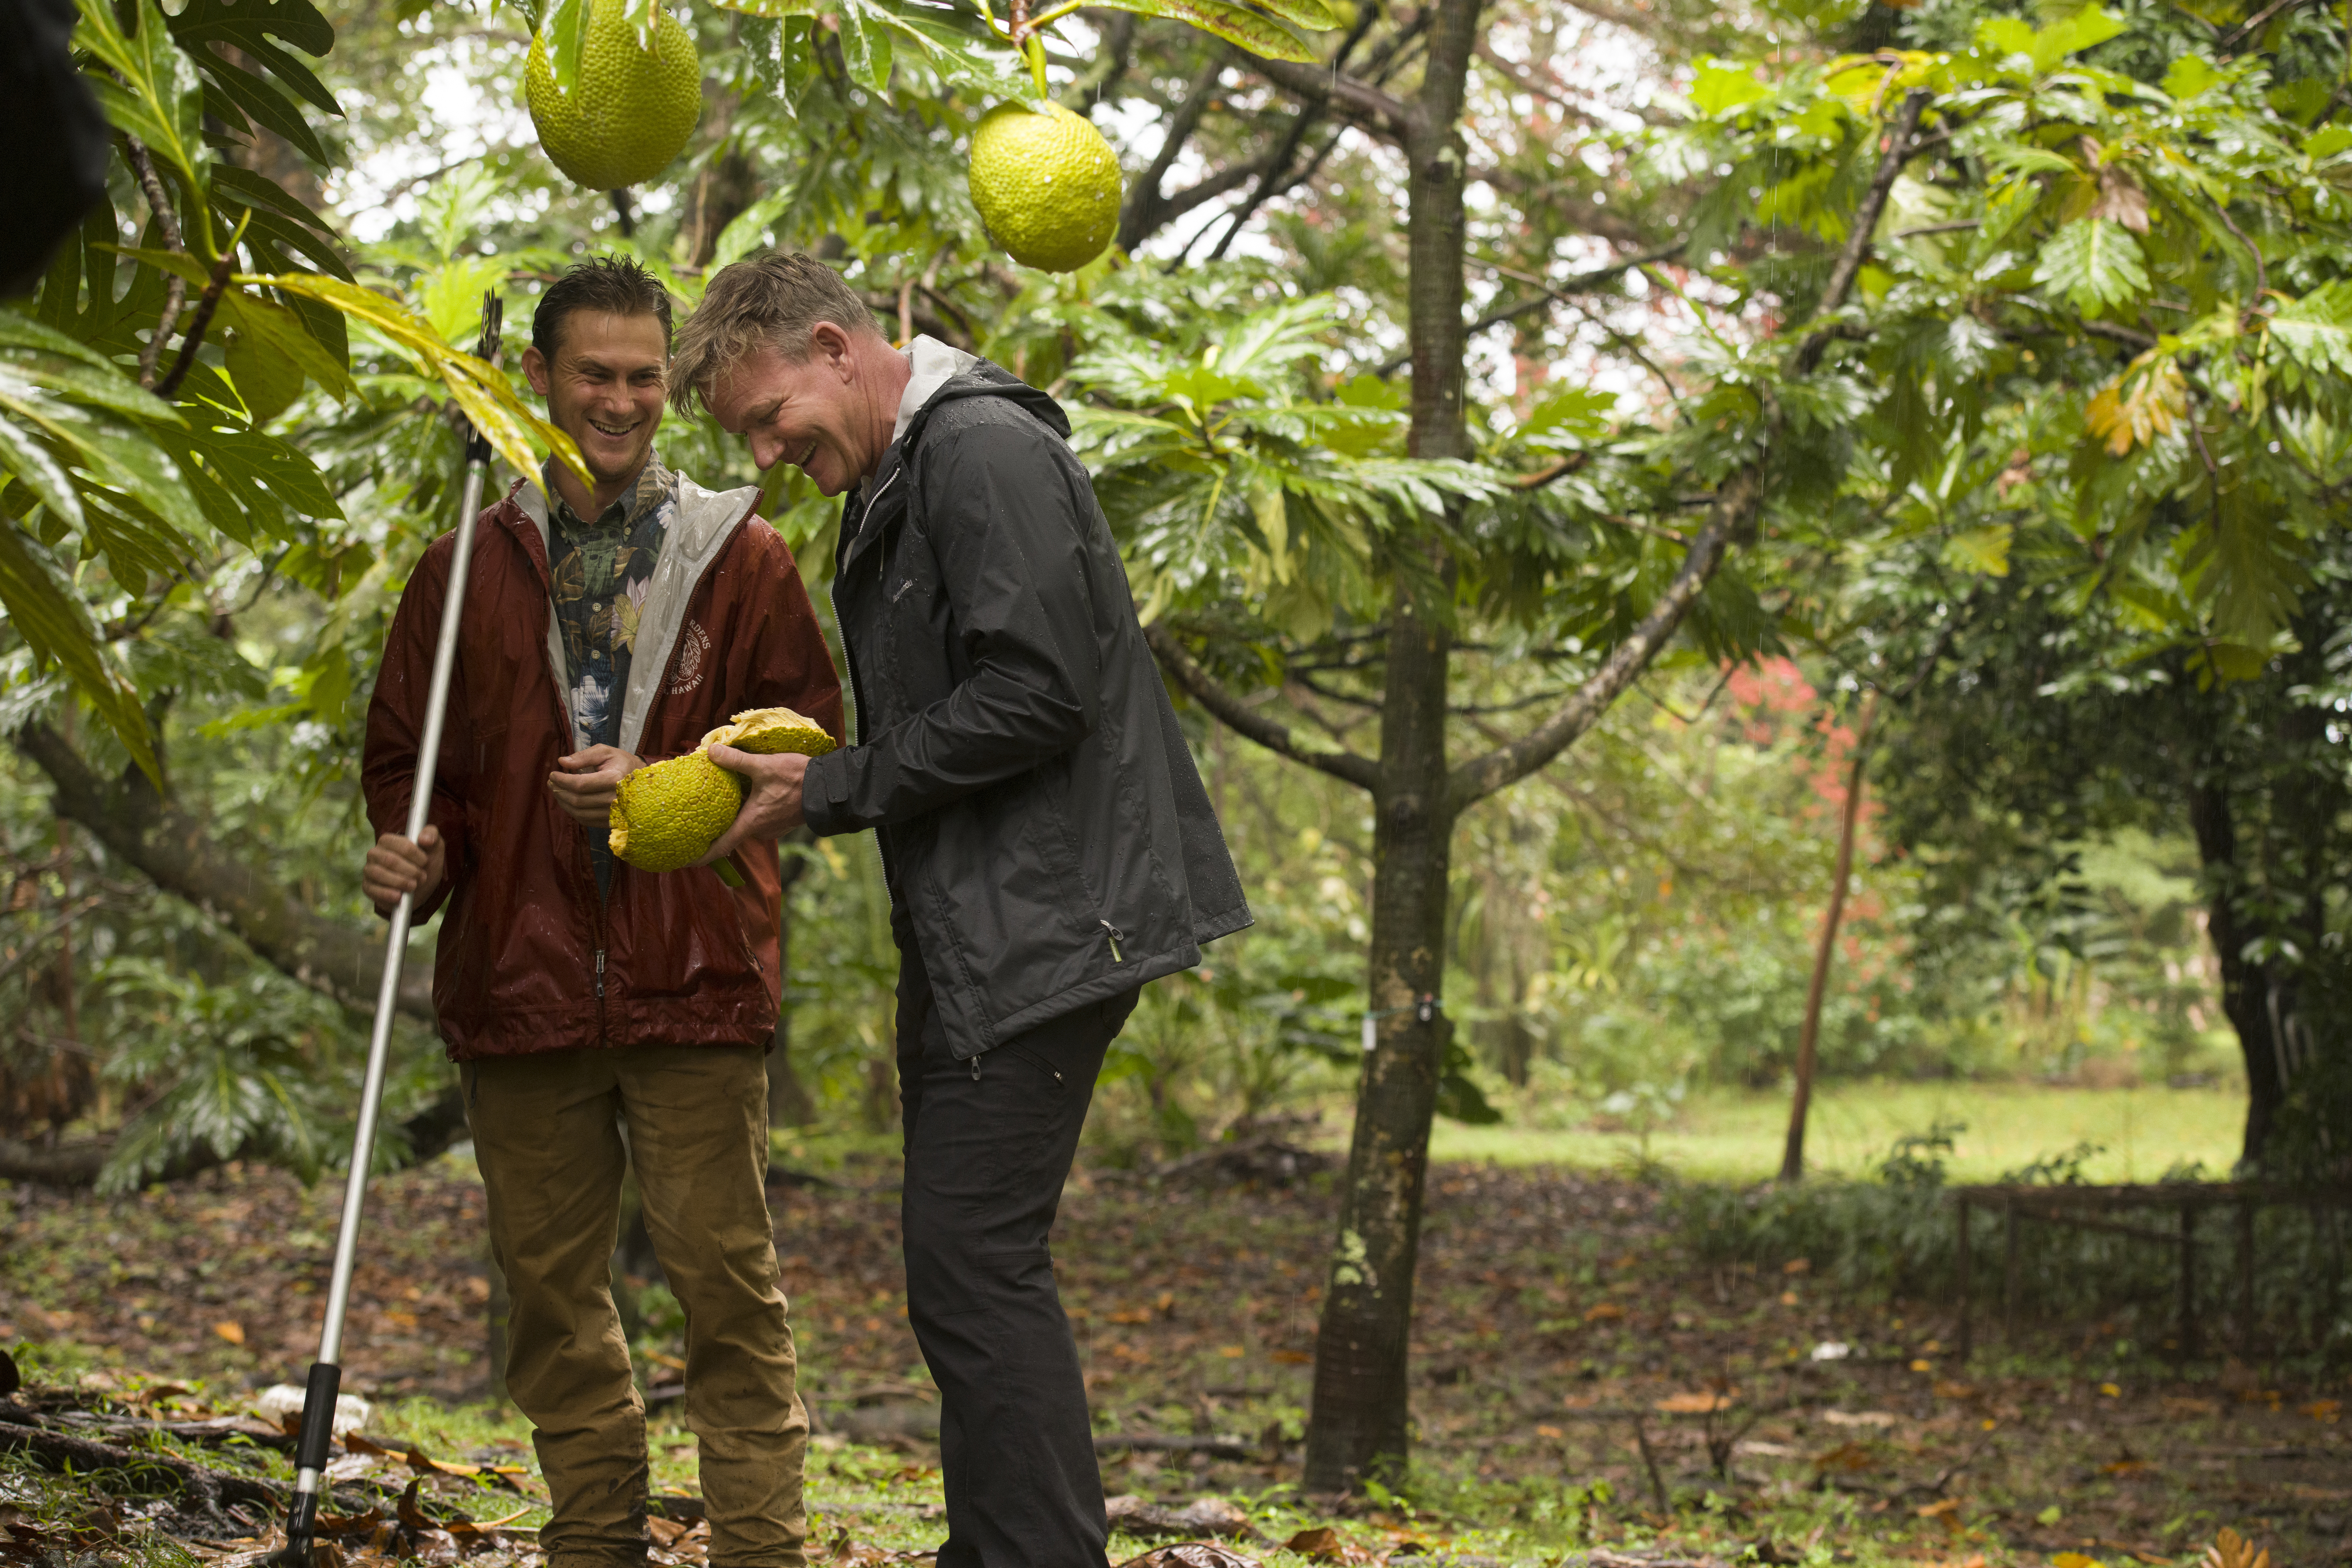 Hawaii - Mike (L) introduces Gordon Ramsay to breadfruit, a fruit that can be used as a vegetable. (National Geographic/Michael Muller)